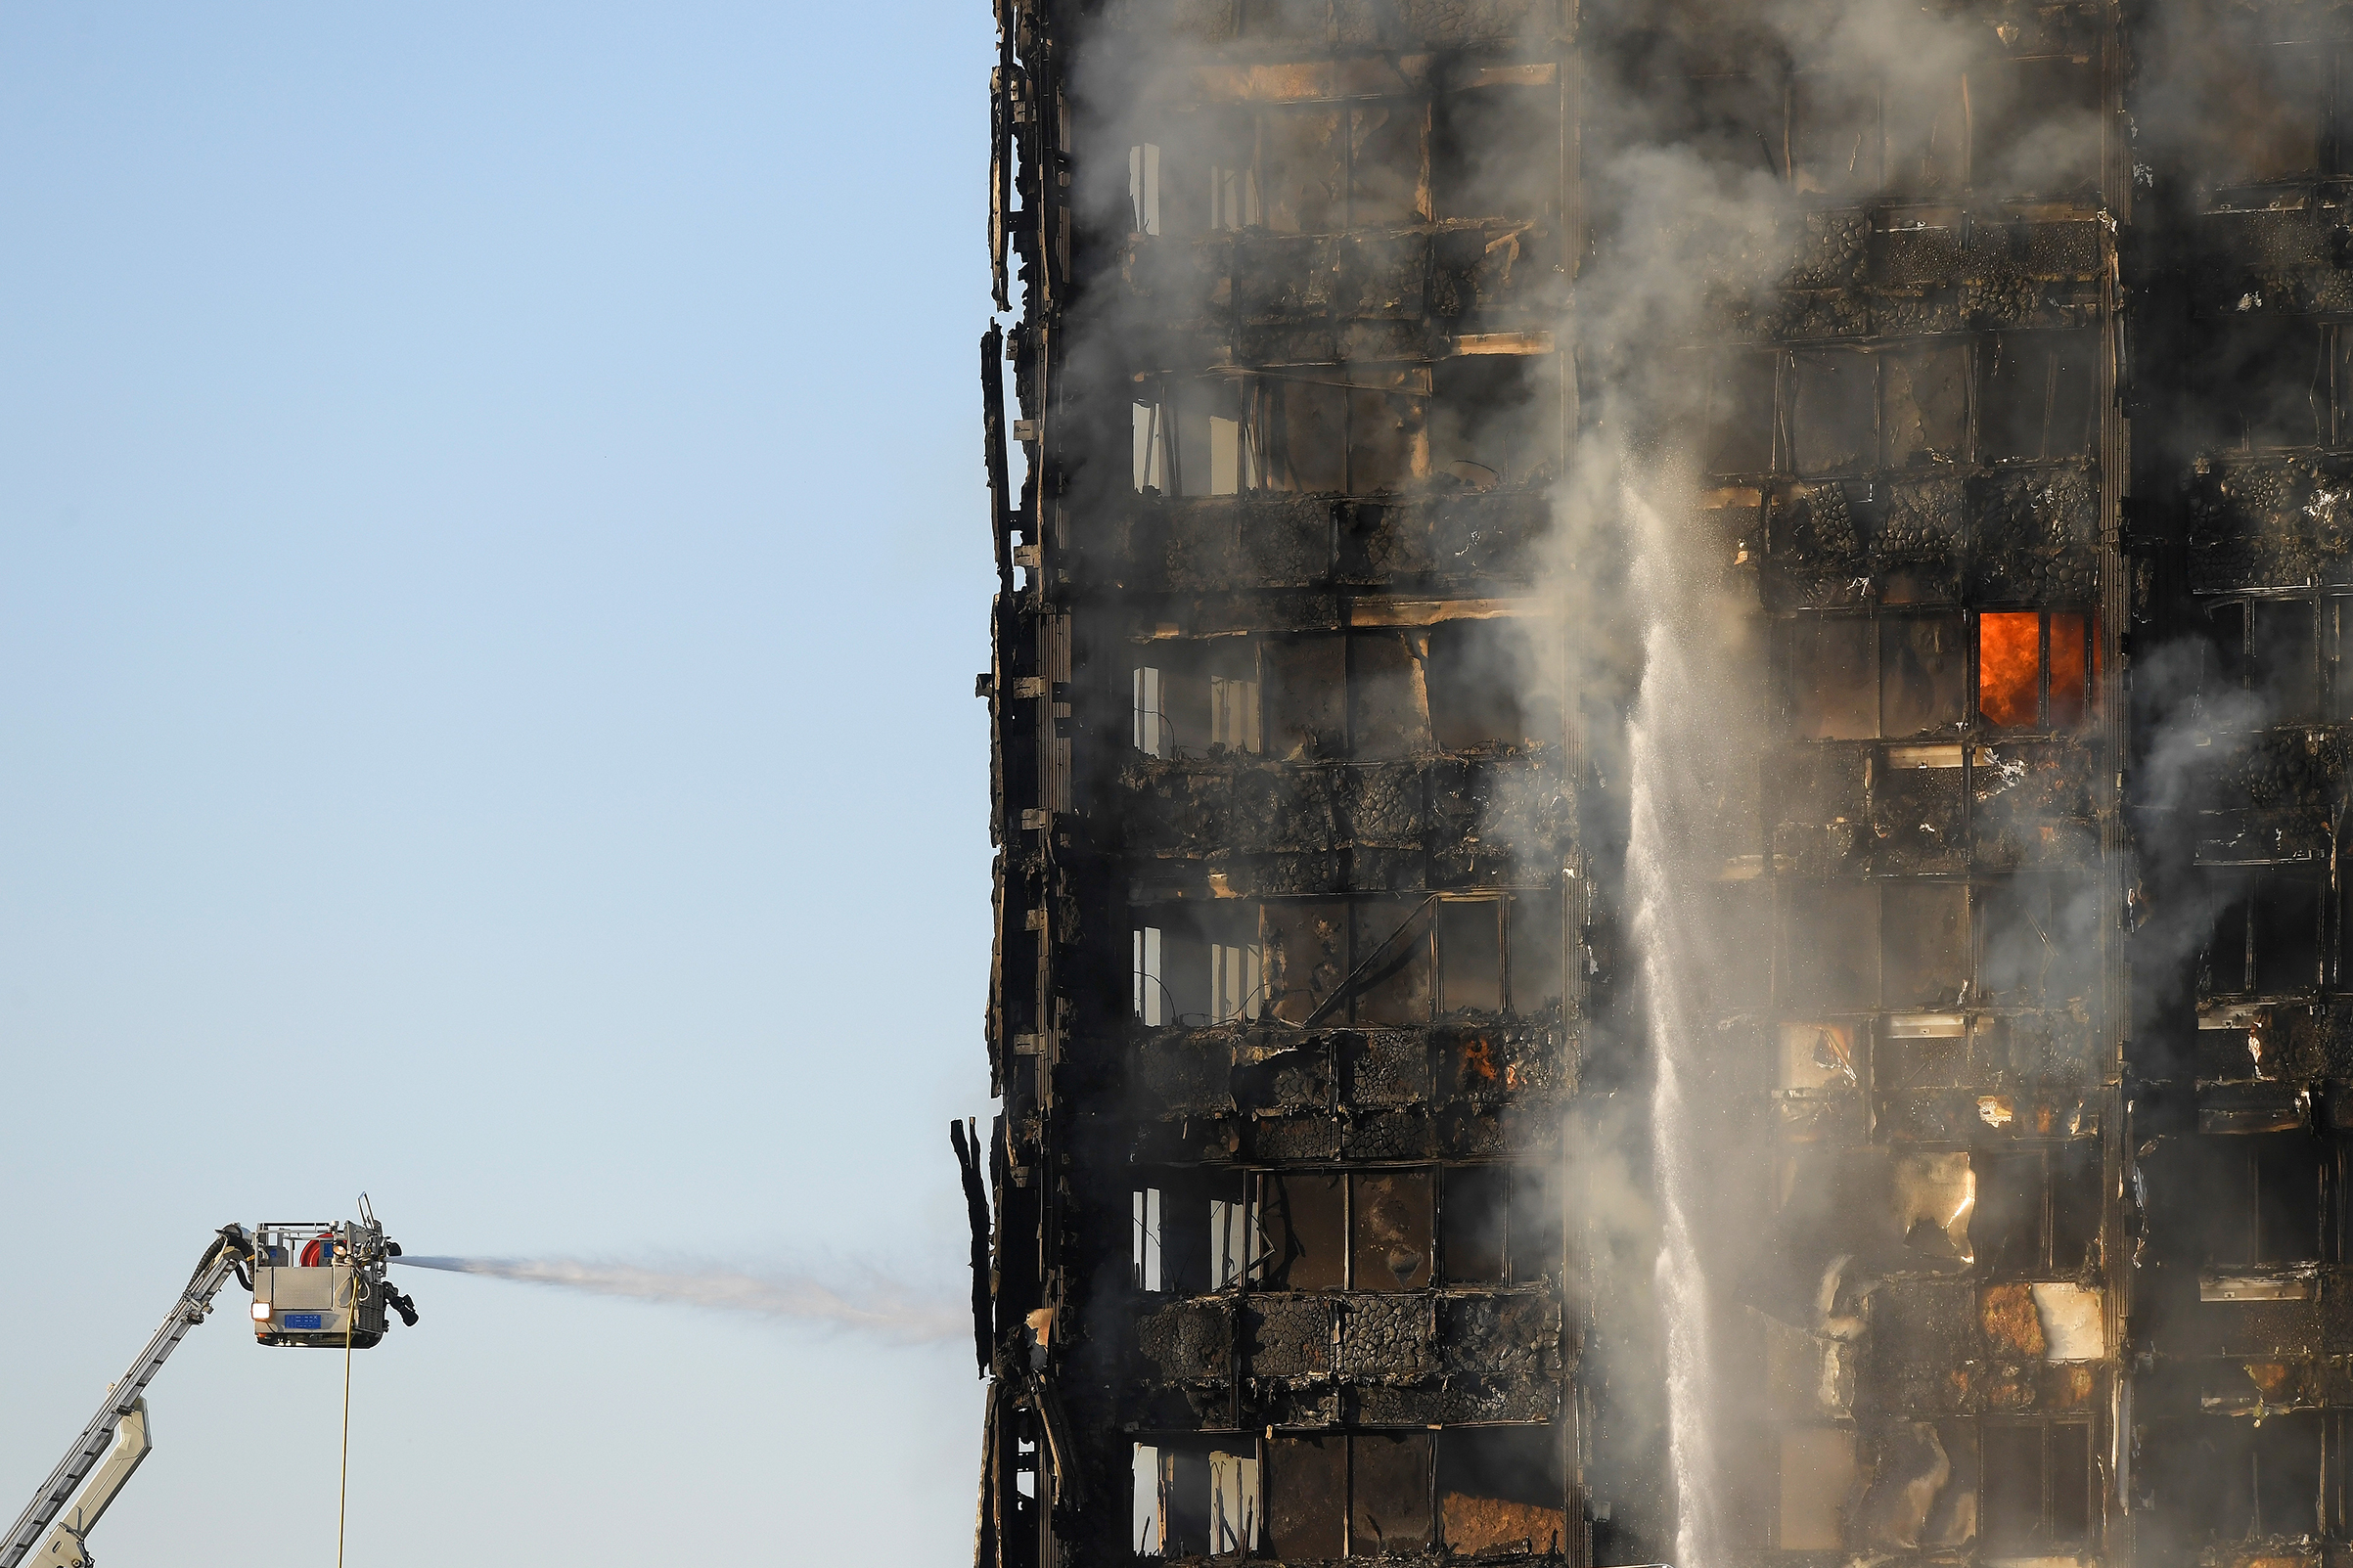 Firefighters spray water into the smoldering frame of a high-rise that caught fire overnight in West London on June 14, 2017.